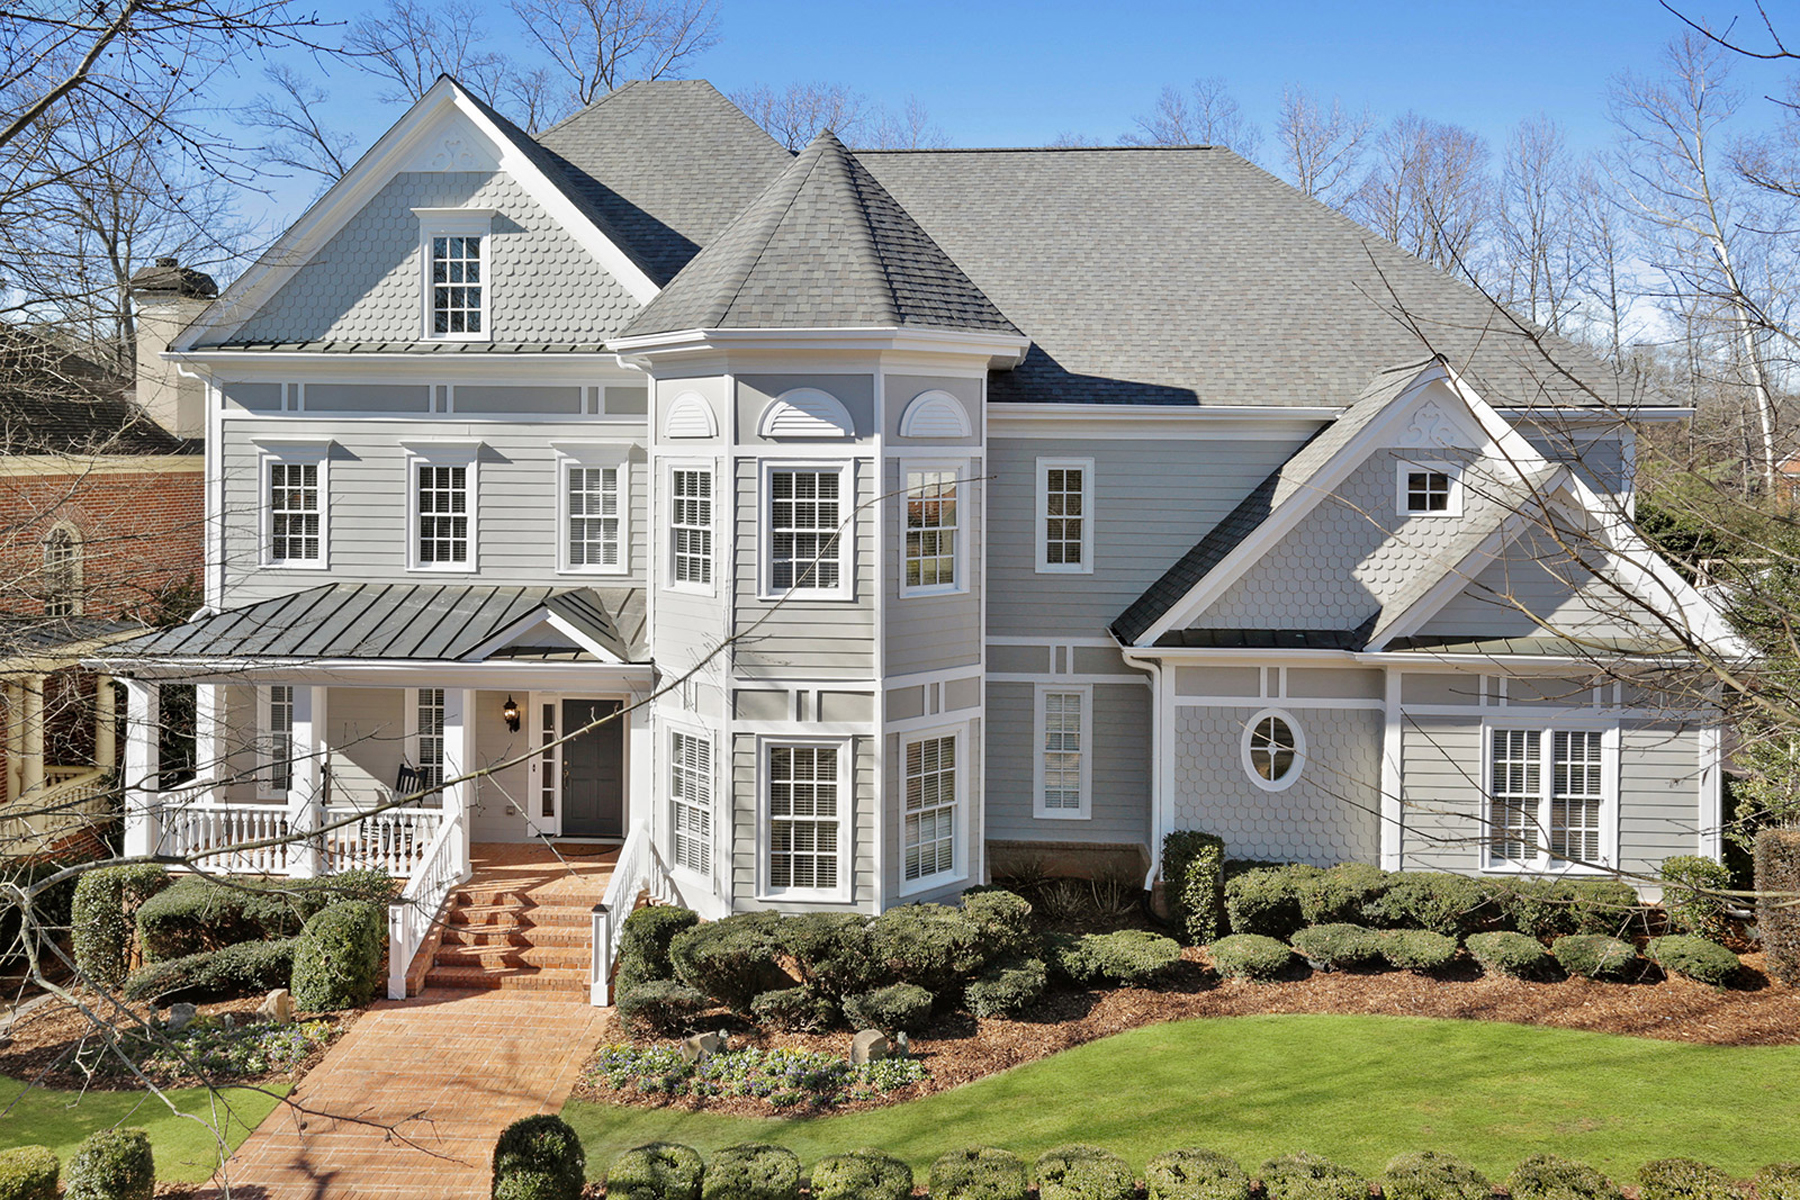 8111 Lawnview, Alpharetta, GA 30022